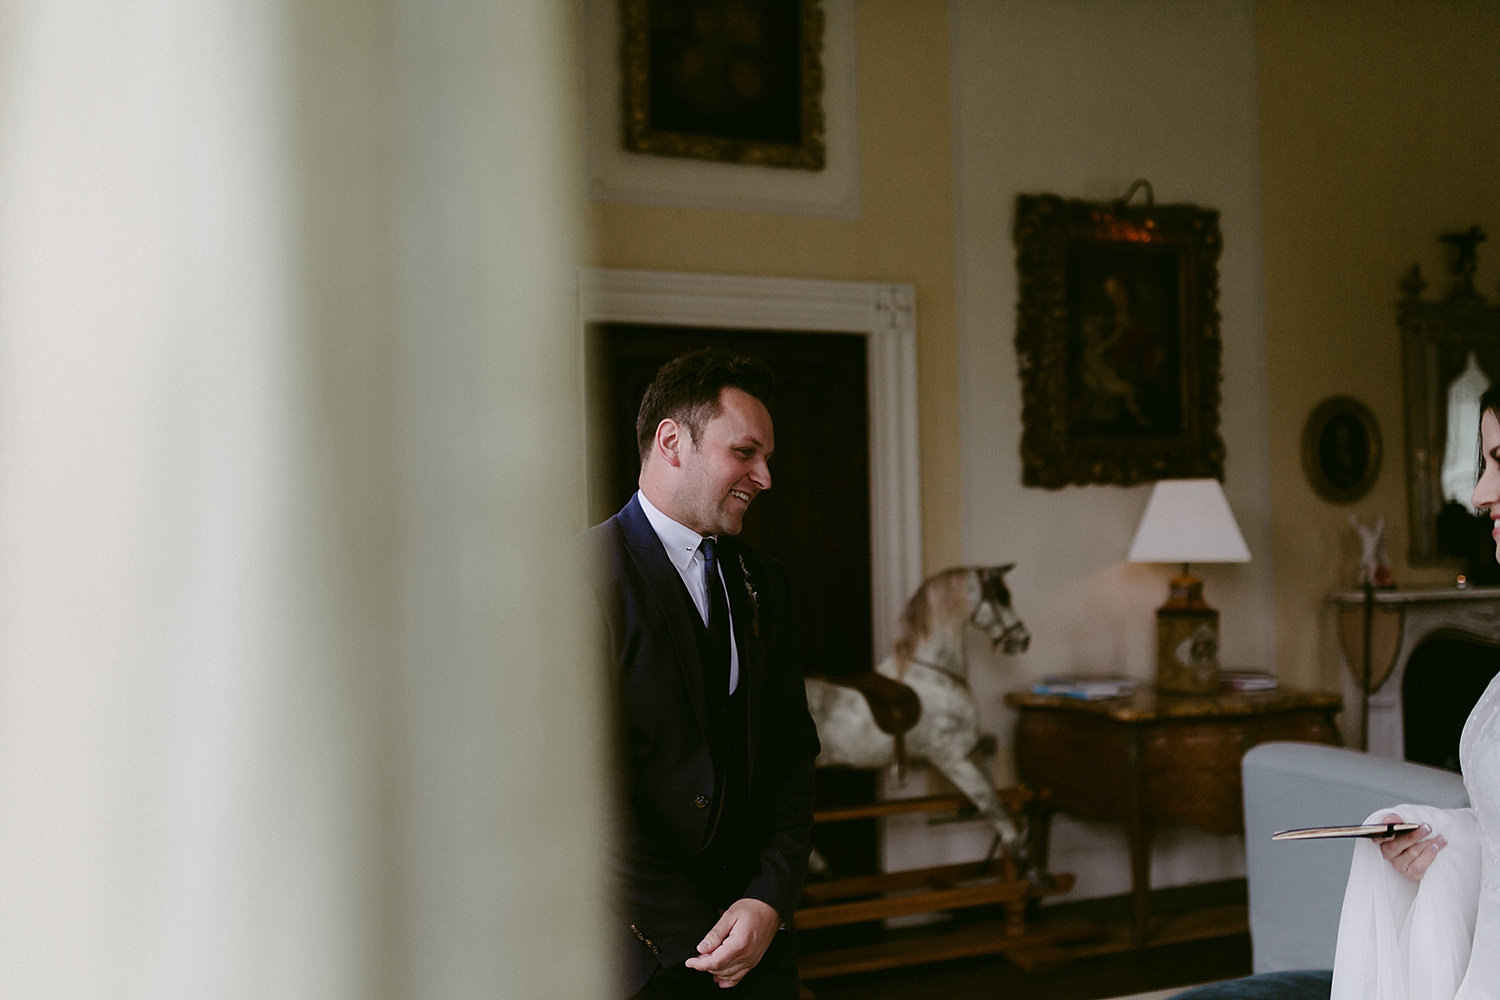 Northern Ireland Wedding Photographers Adam & Grace 5129